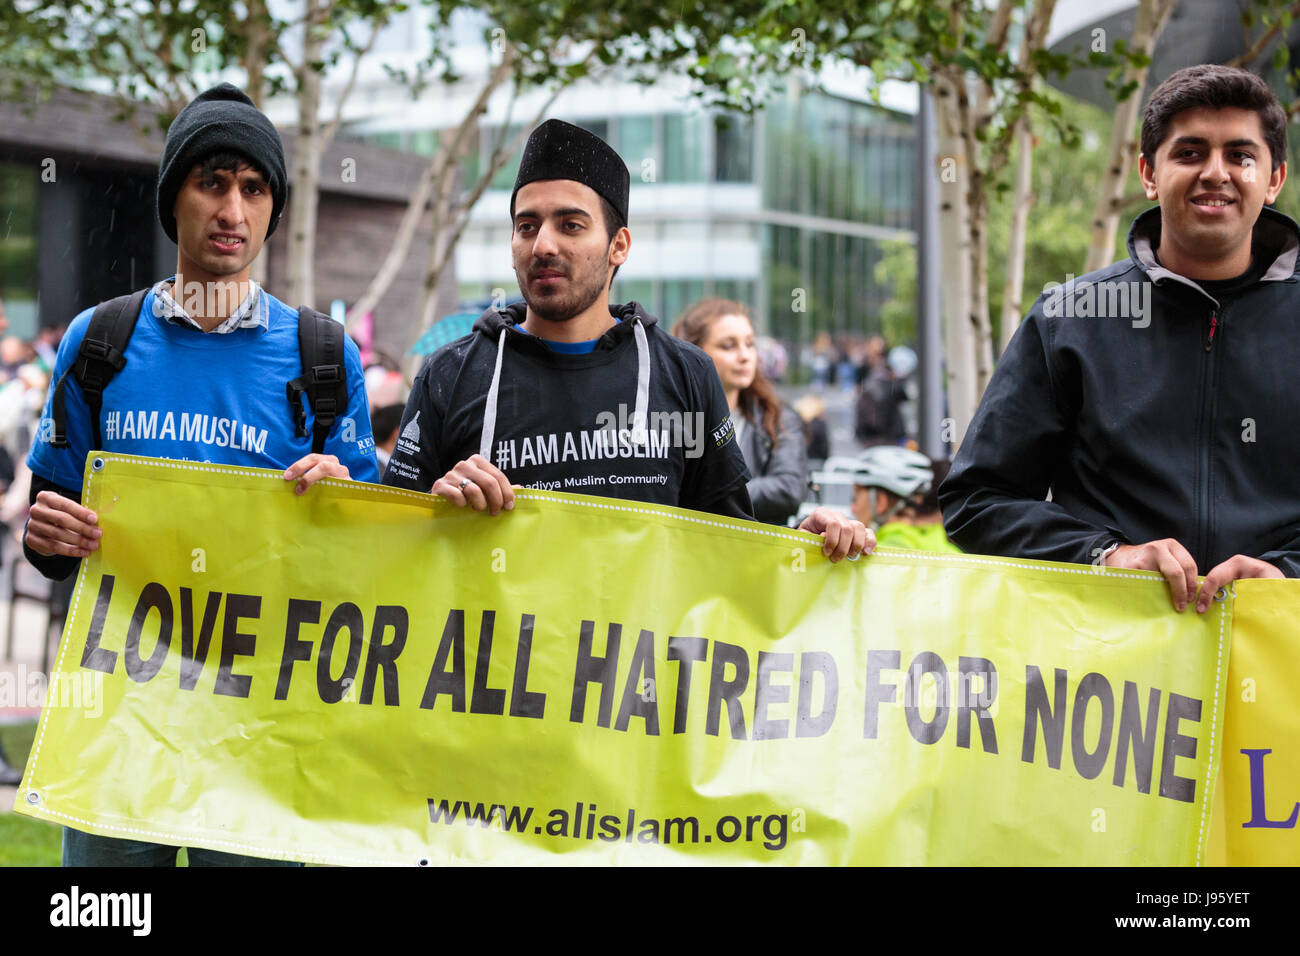 London, 5th June 2017. Representatives from the Muslim community show their respect and solidarity. A vigil is held - Stock Image